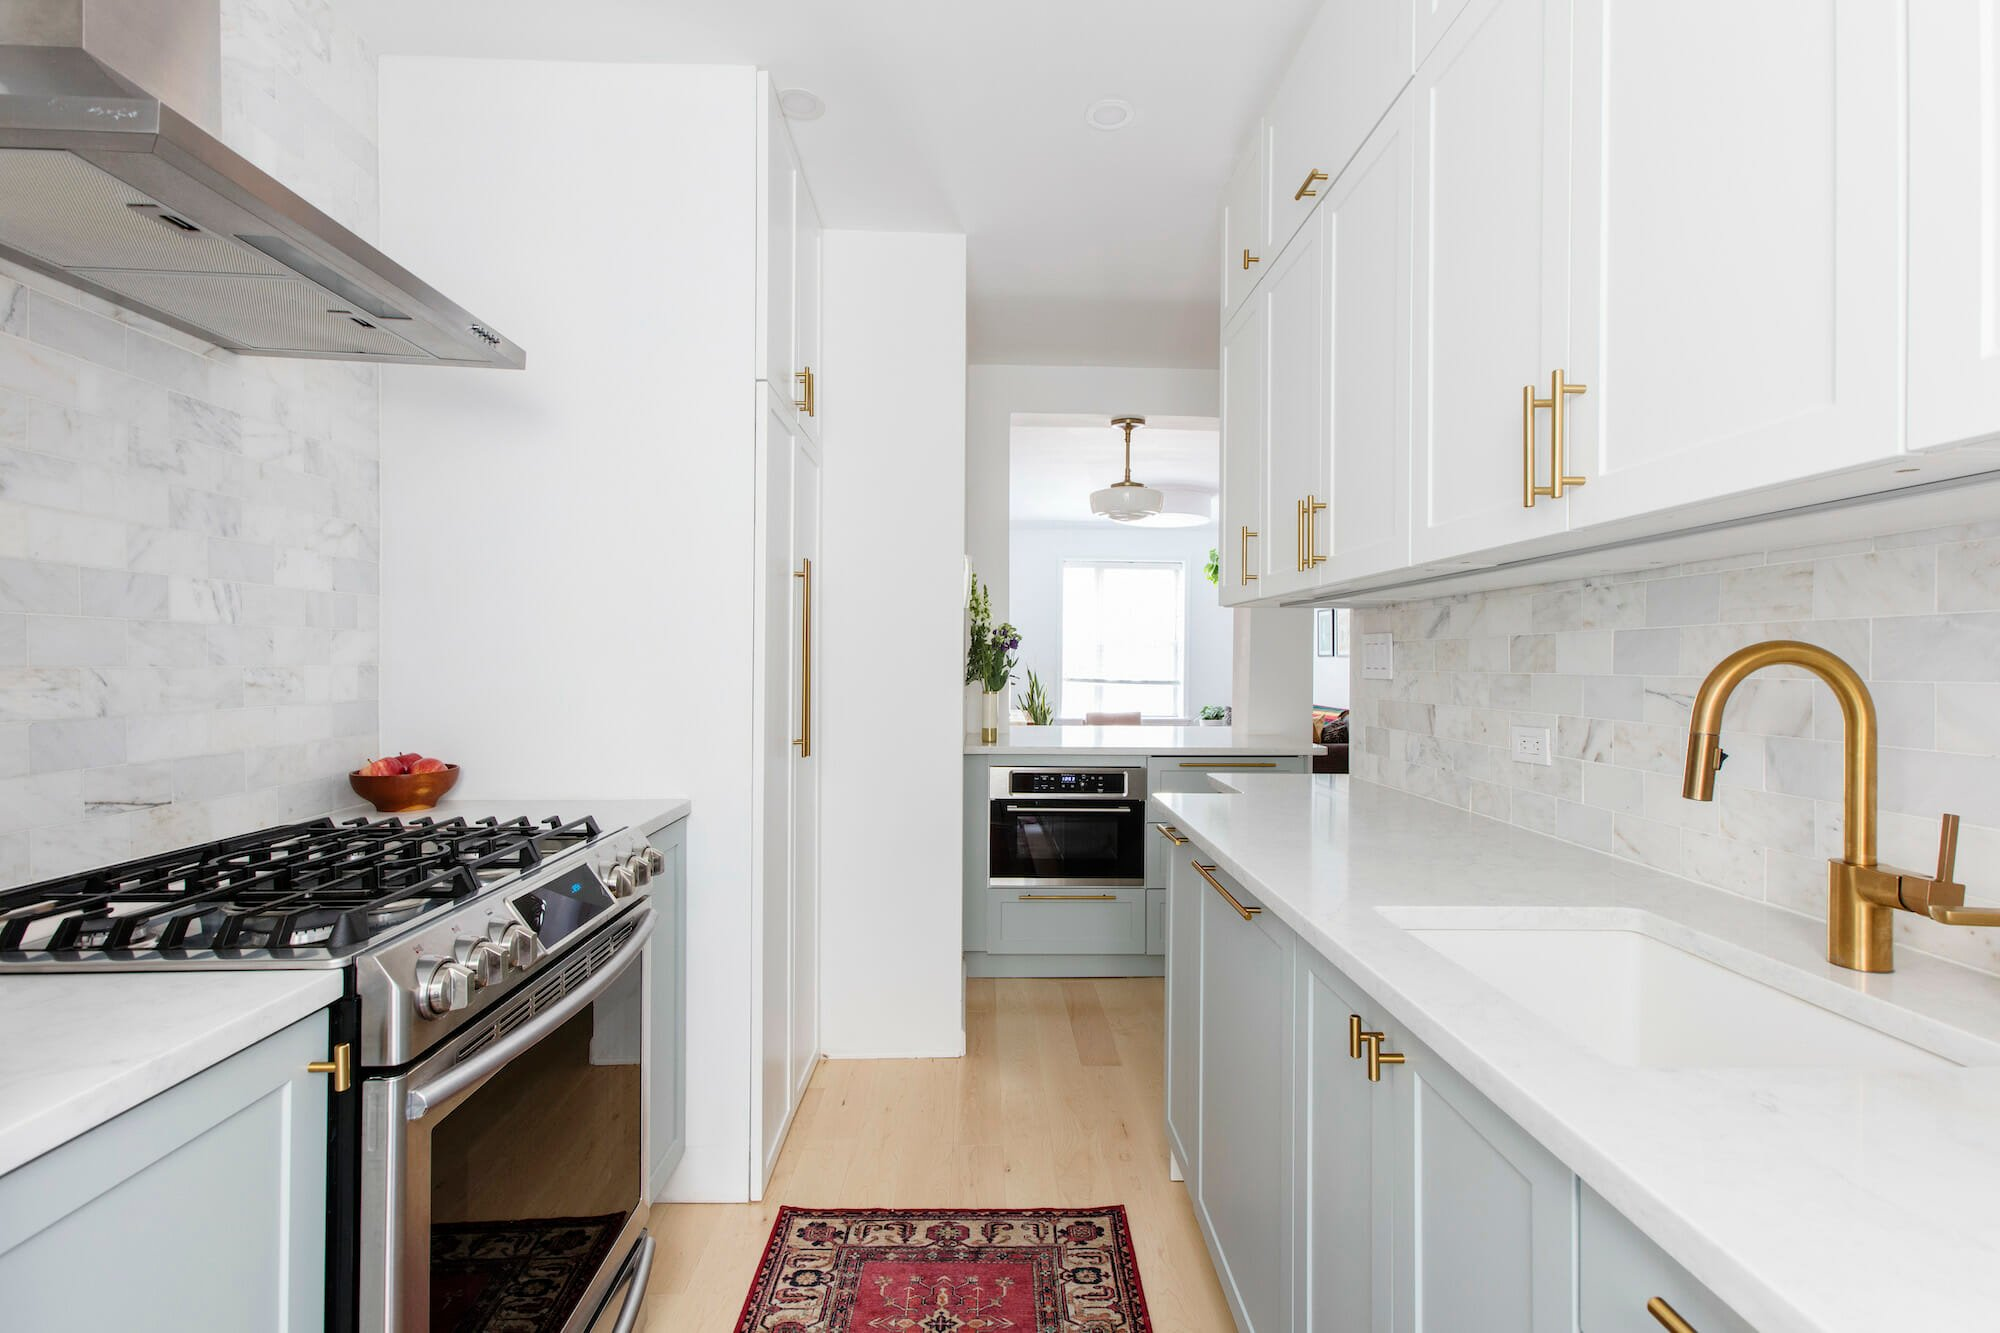 kitchen after renovation, white cabinets, gold hardware